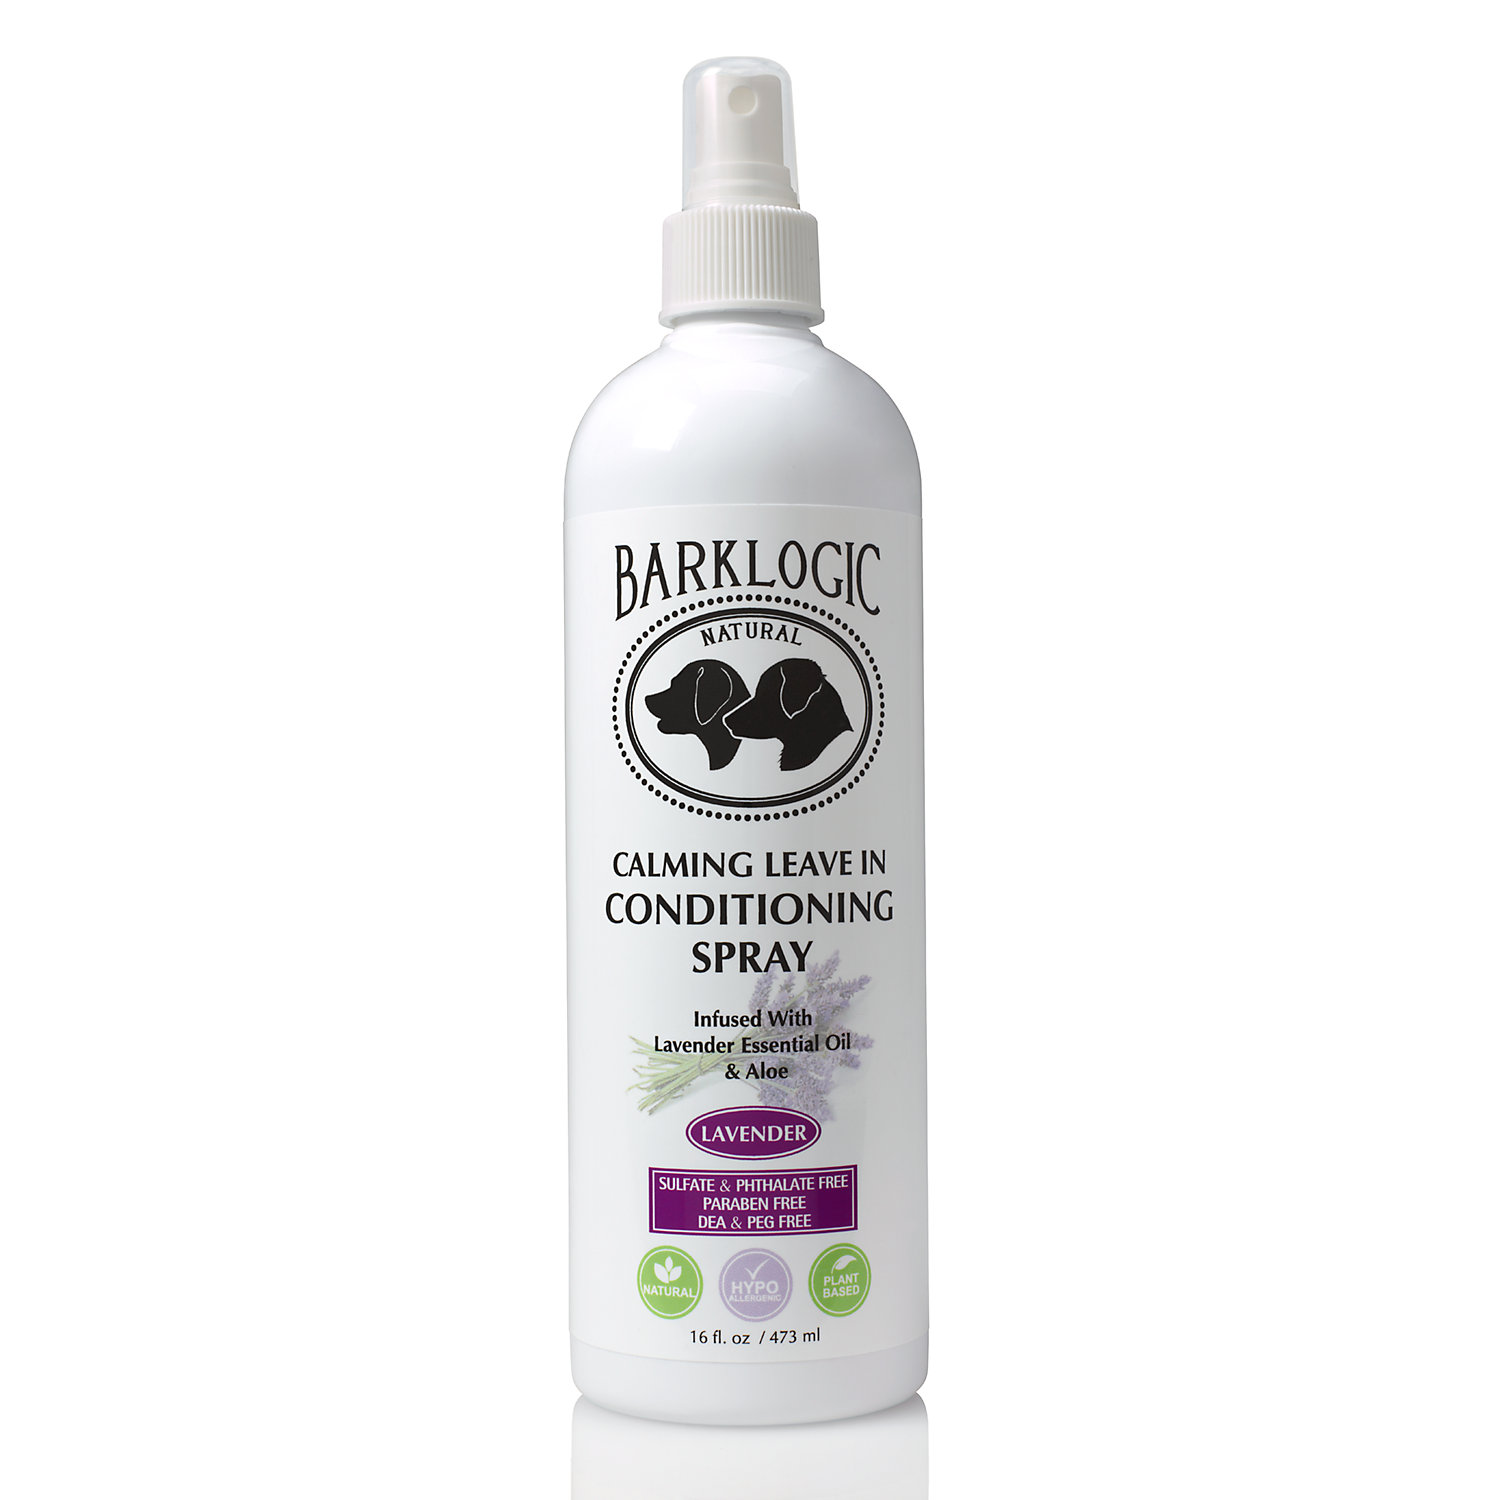 Image of Barklogic Calming Leave-In Conditioning Spray